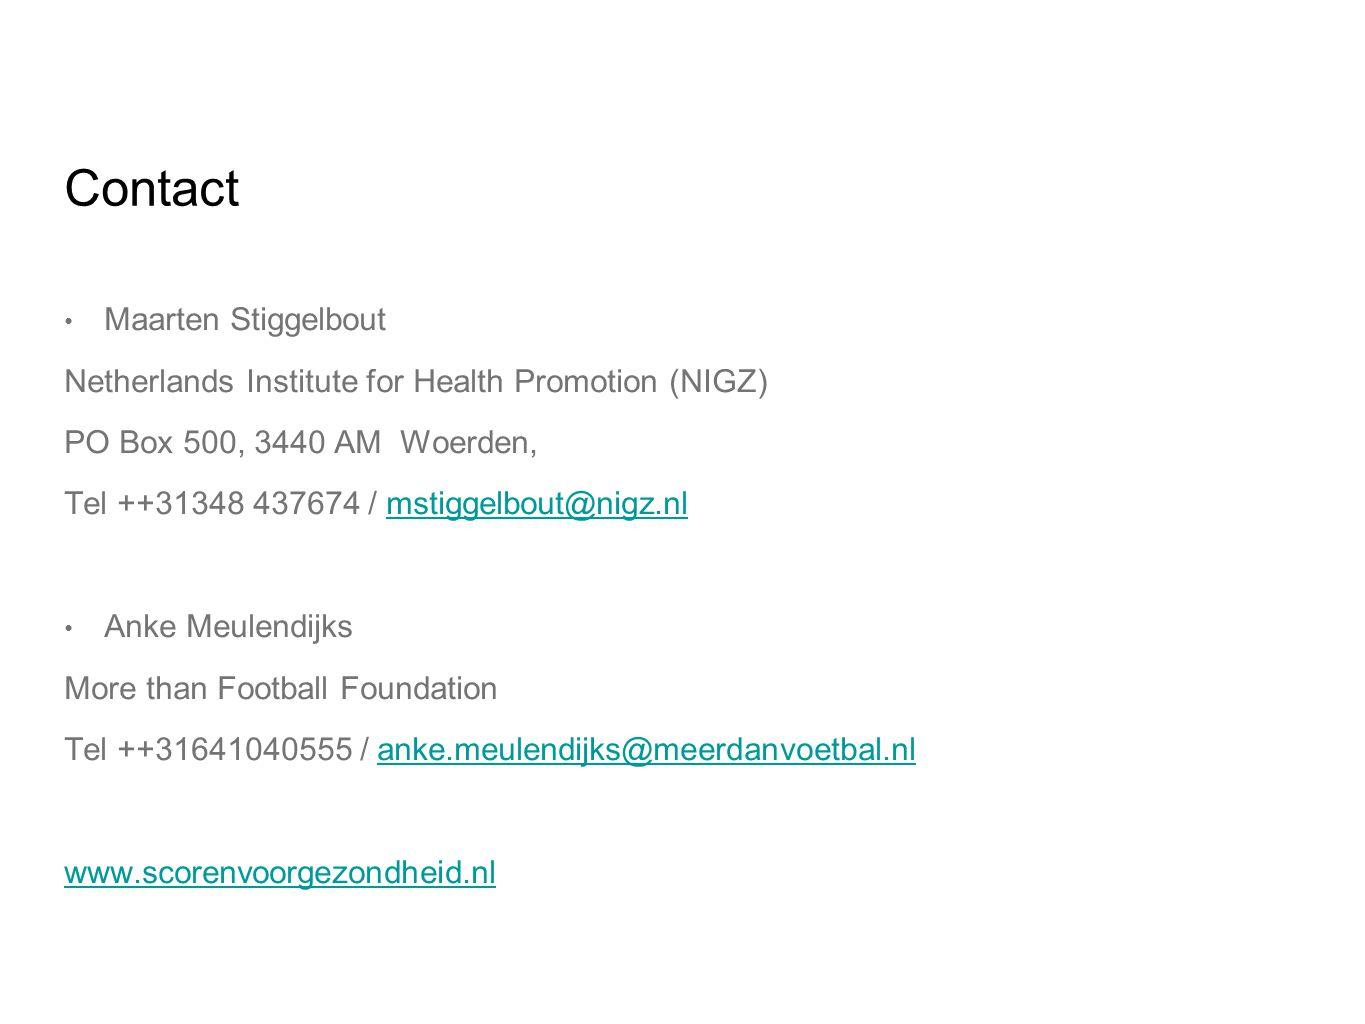 Contact Maarten Stiggelbout Netherlands Institute for Health Promotion (NIGZ) PO Box 500, 3440 AM Woerden, Tel ++31348 437674 / mstiggelbout@nigz.nlmstiggelbout@nigz.nl Anke Meulendijks More than Football Foundation Tel ++31641040555 / anke.meulendijks@meerdanvoetbal.nlanke.meulendijks@meerdanvoetbal.nl www.scorenvoorgezondheid.nl